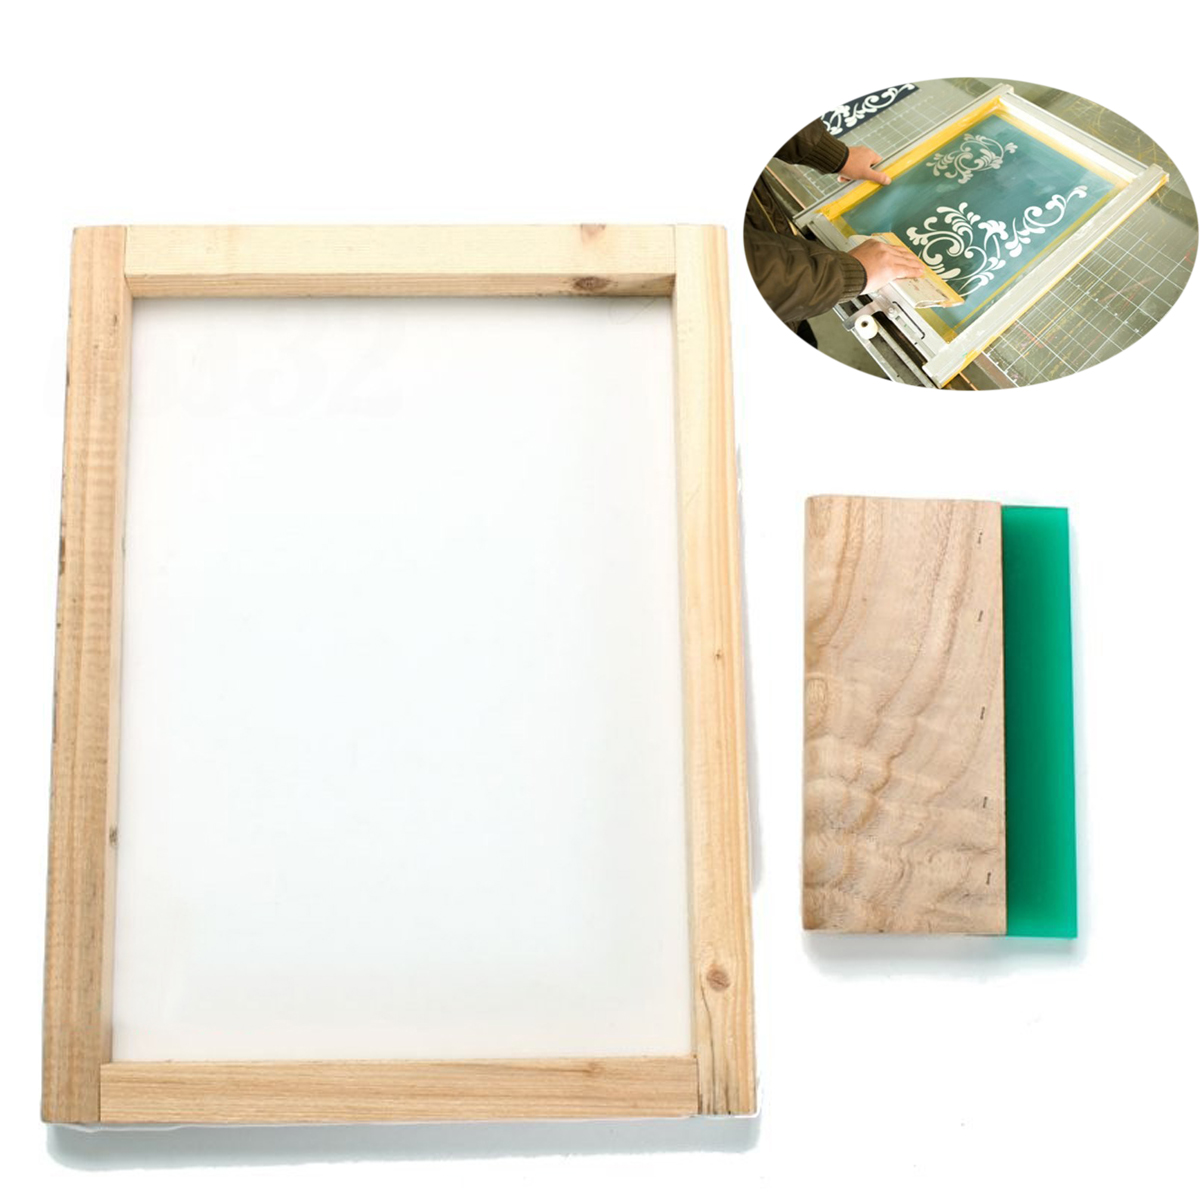 Mayitr 8 Wood Squeegee DIY Ink Scraper Scratch Resistant Tool & 300*400mm Silk Screen Printing Frame Wooden Board with 43T Mesh free shipping 3m squeegee high quality wrapping scraper with cloth pp sticker scraper car wrap tools felt scarper squeegee a02